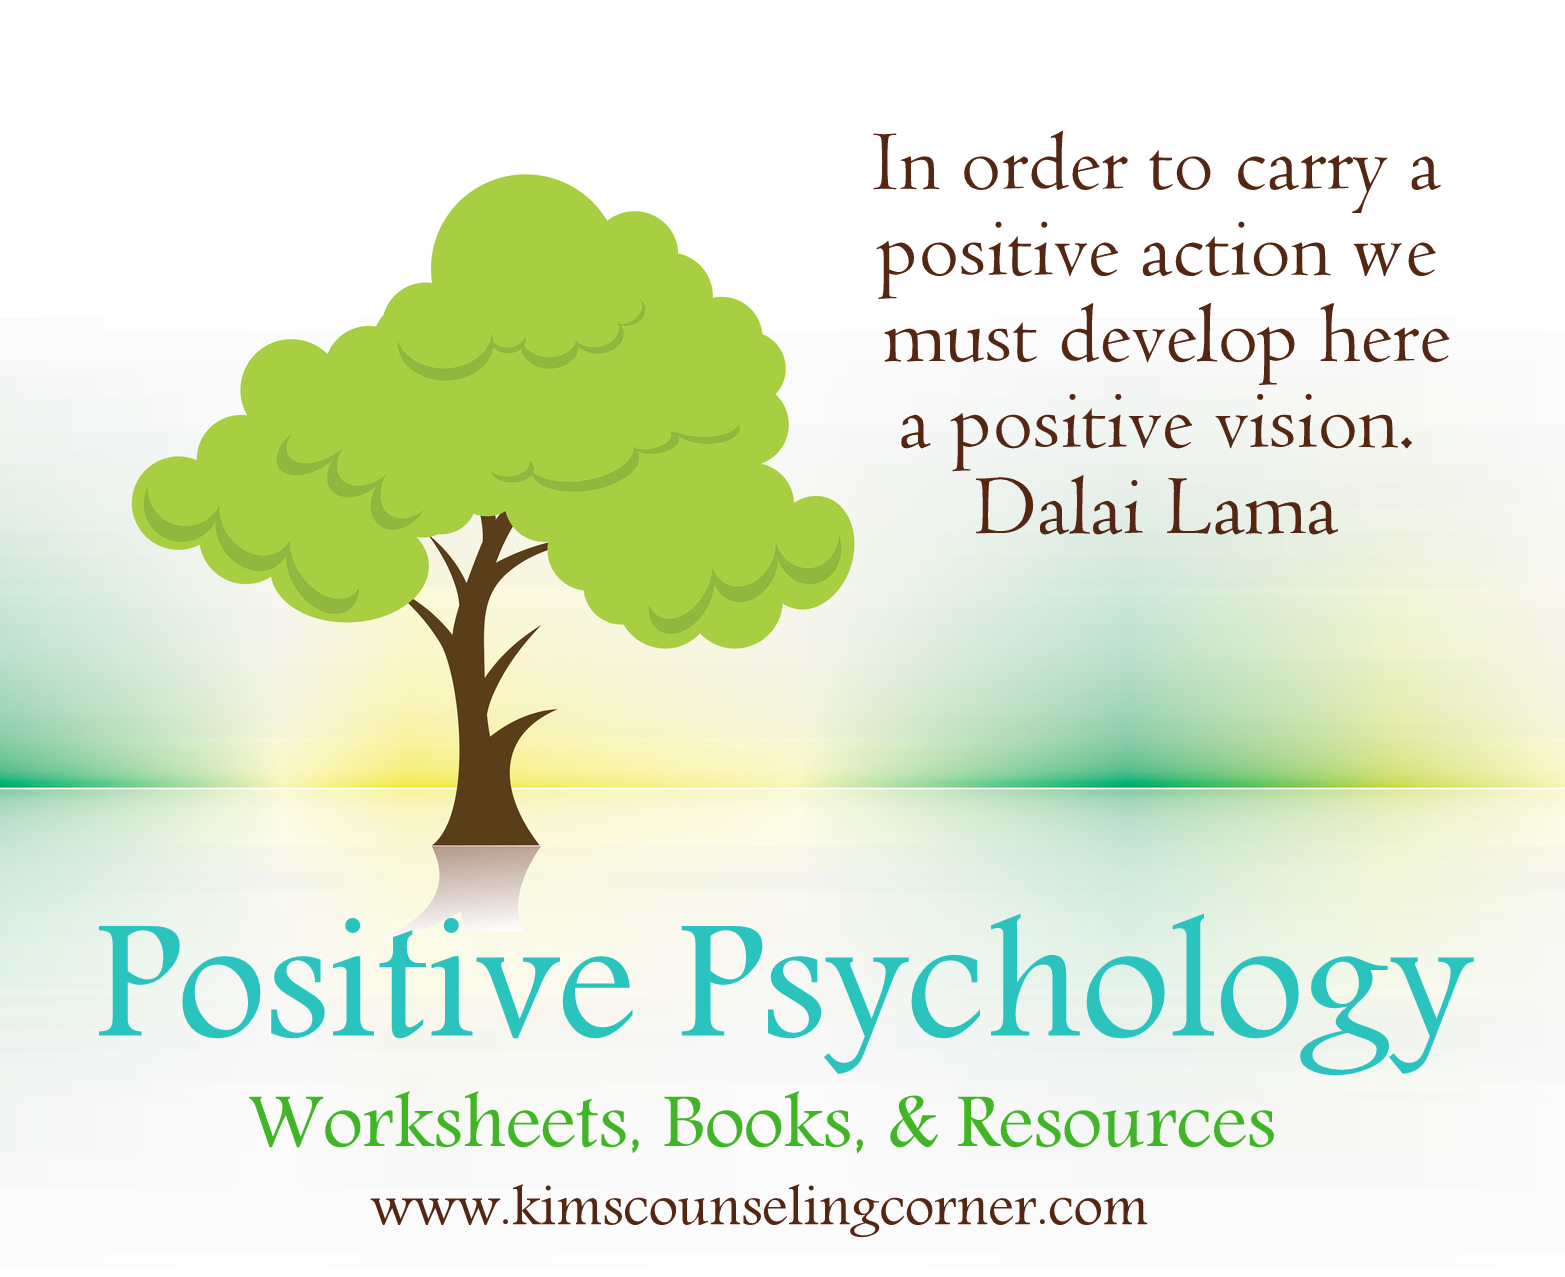 positive psych The positive psychology of martin seligman, a pioneer of the psychology of happiness and human flourishing.